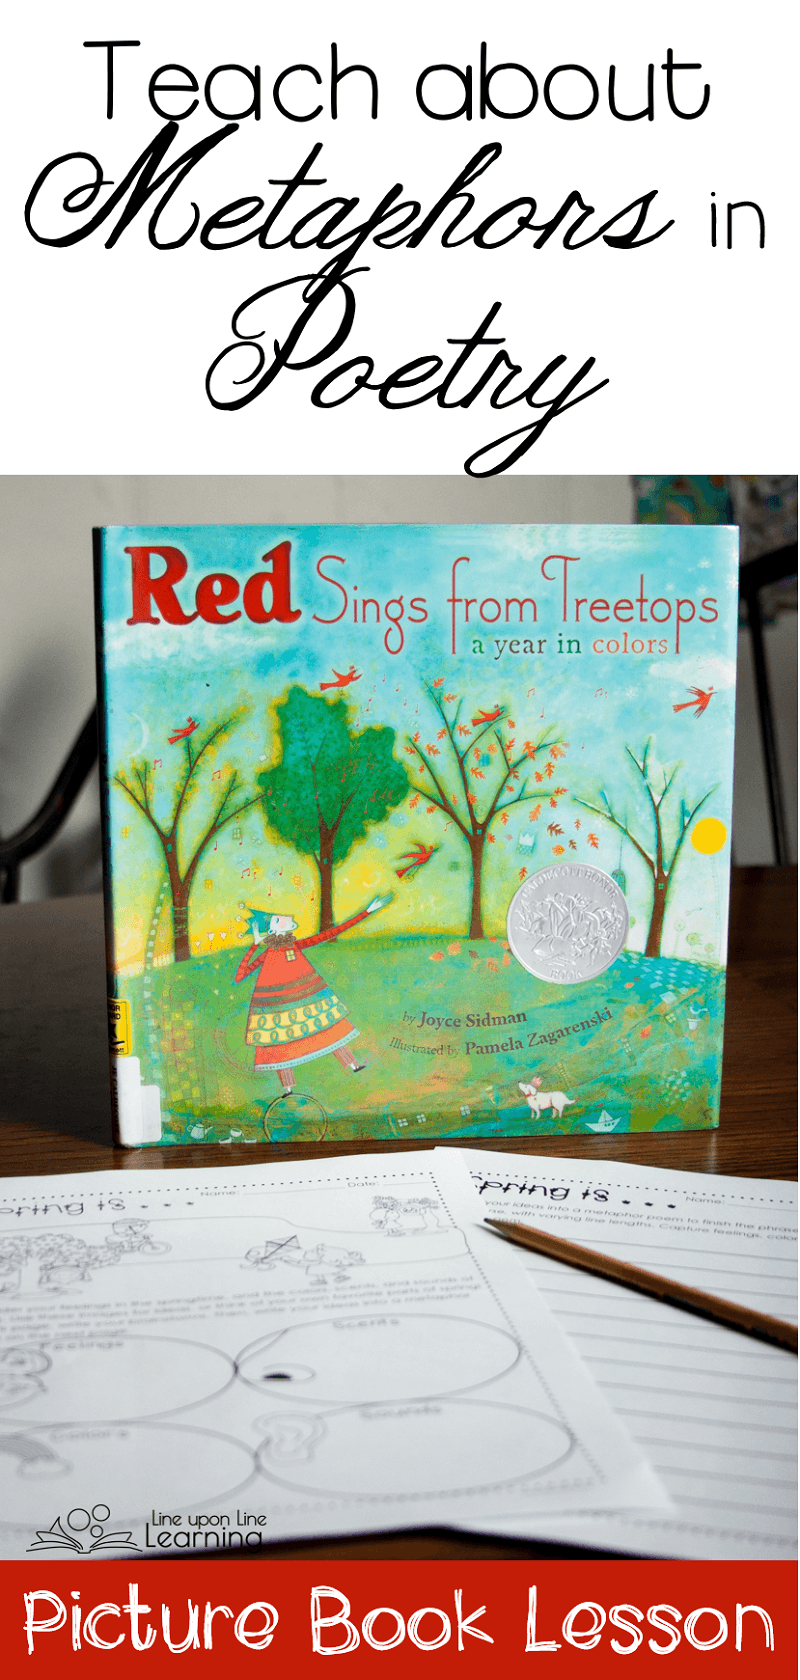 Use Red Sings From Treetops as the beginning of a discussion about imagism and strong metaphors in poetry.